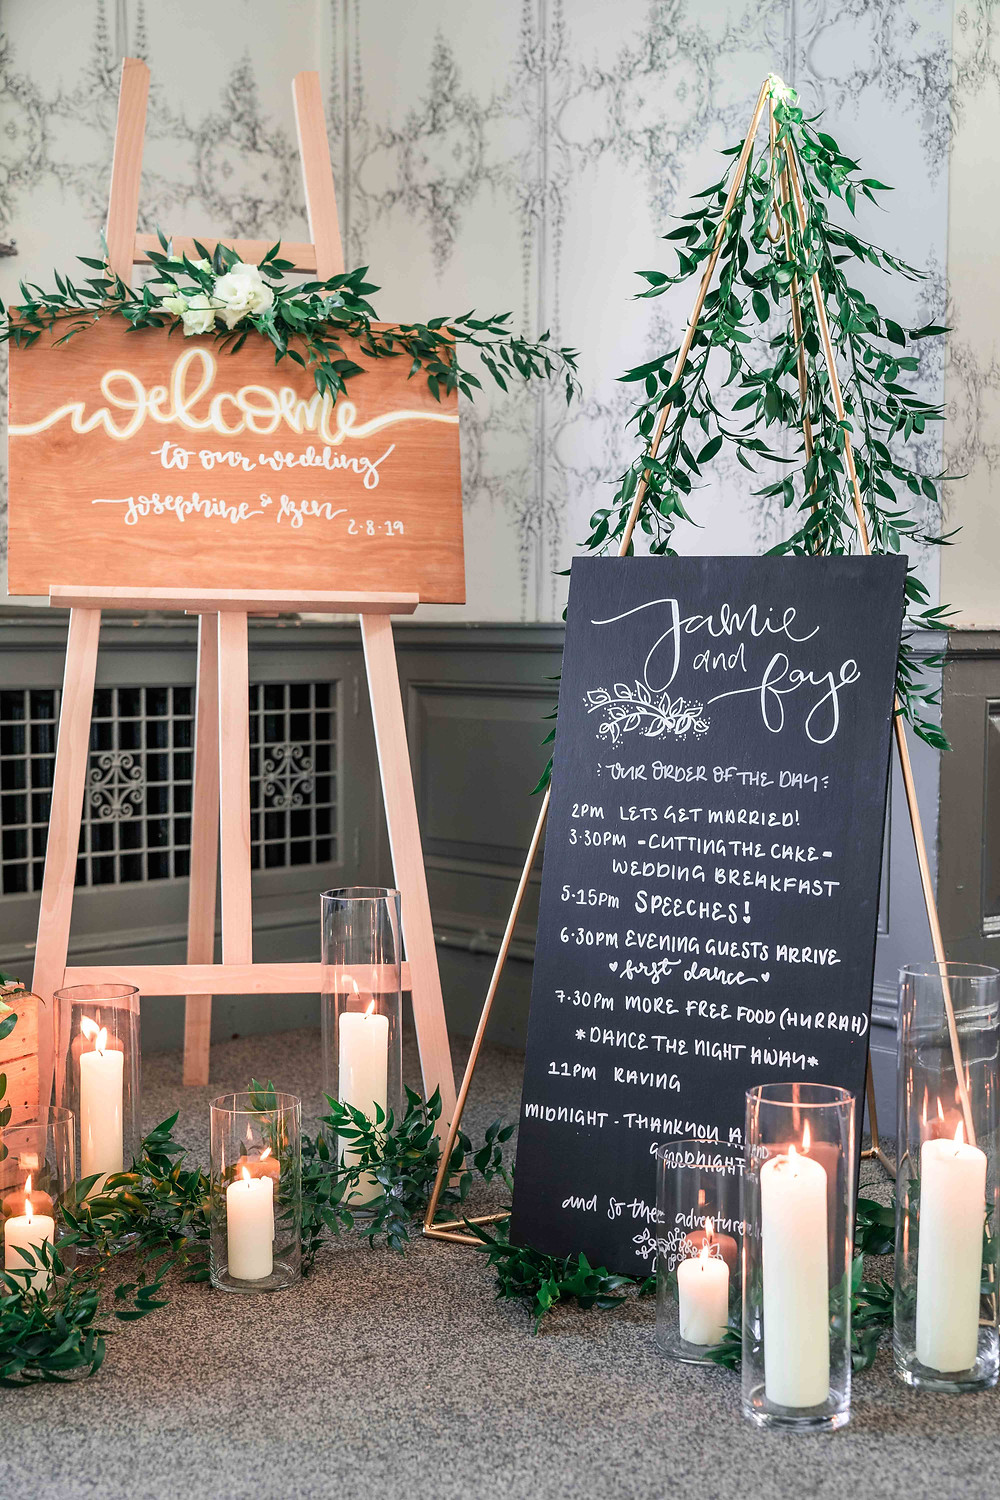 Personalised wedding signage and stationery for your bespoke wedding. Wooden wedding welcome sign.